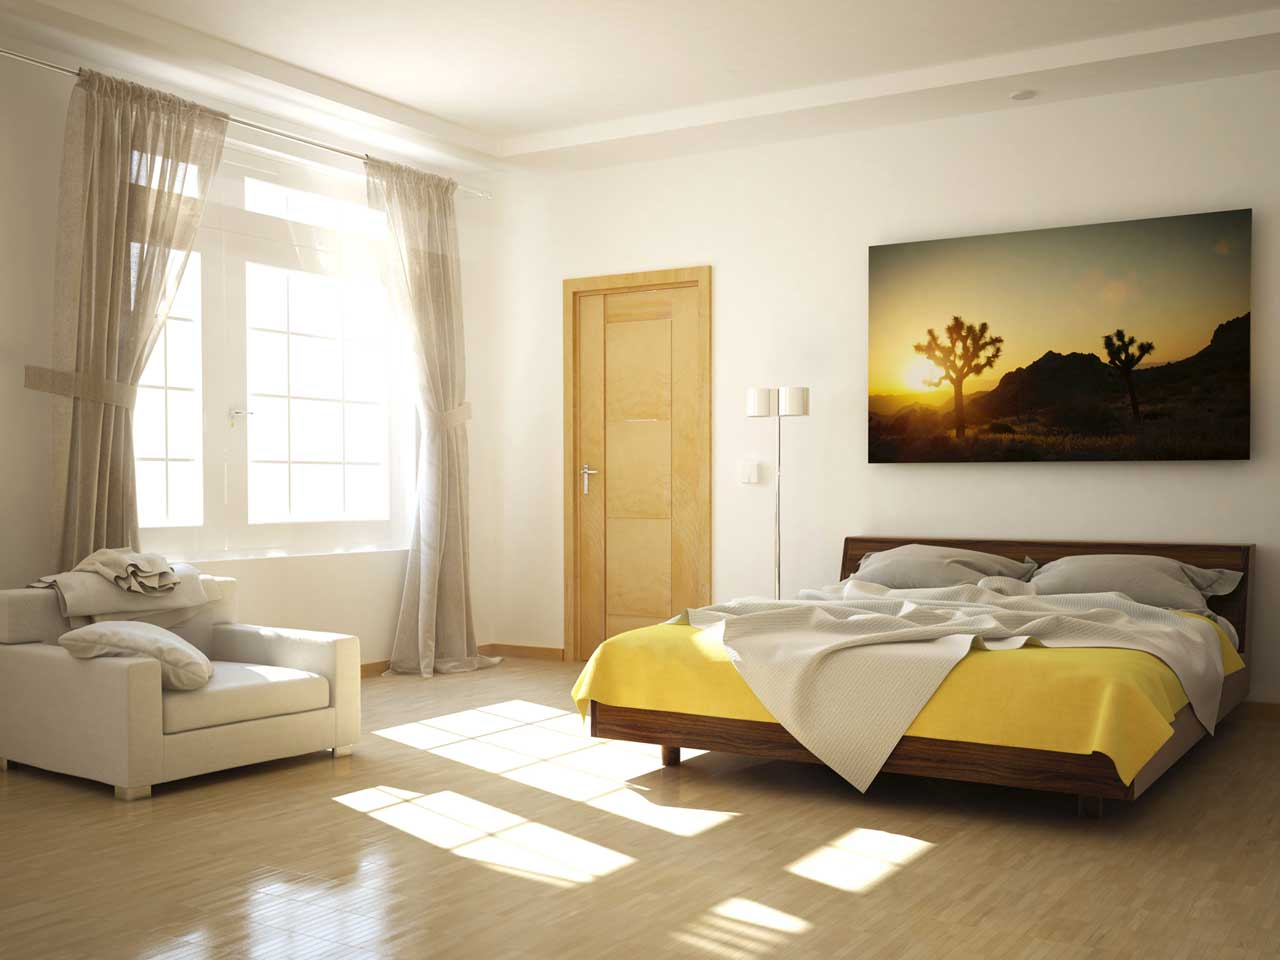 A bright and airy room